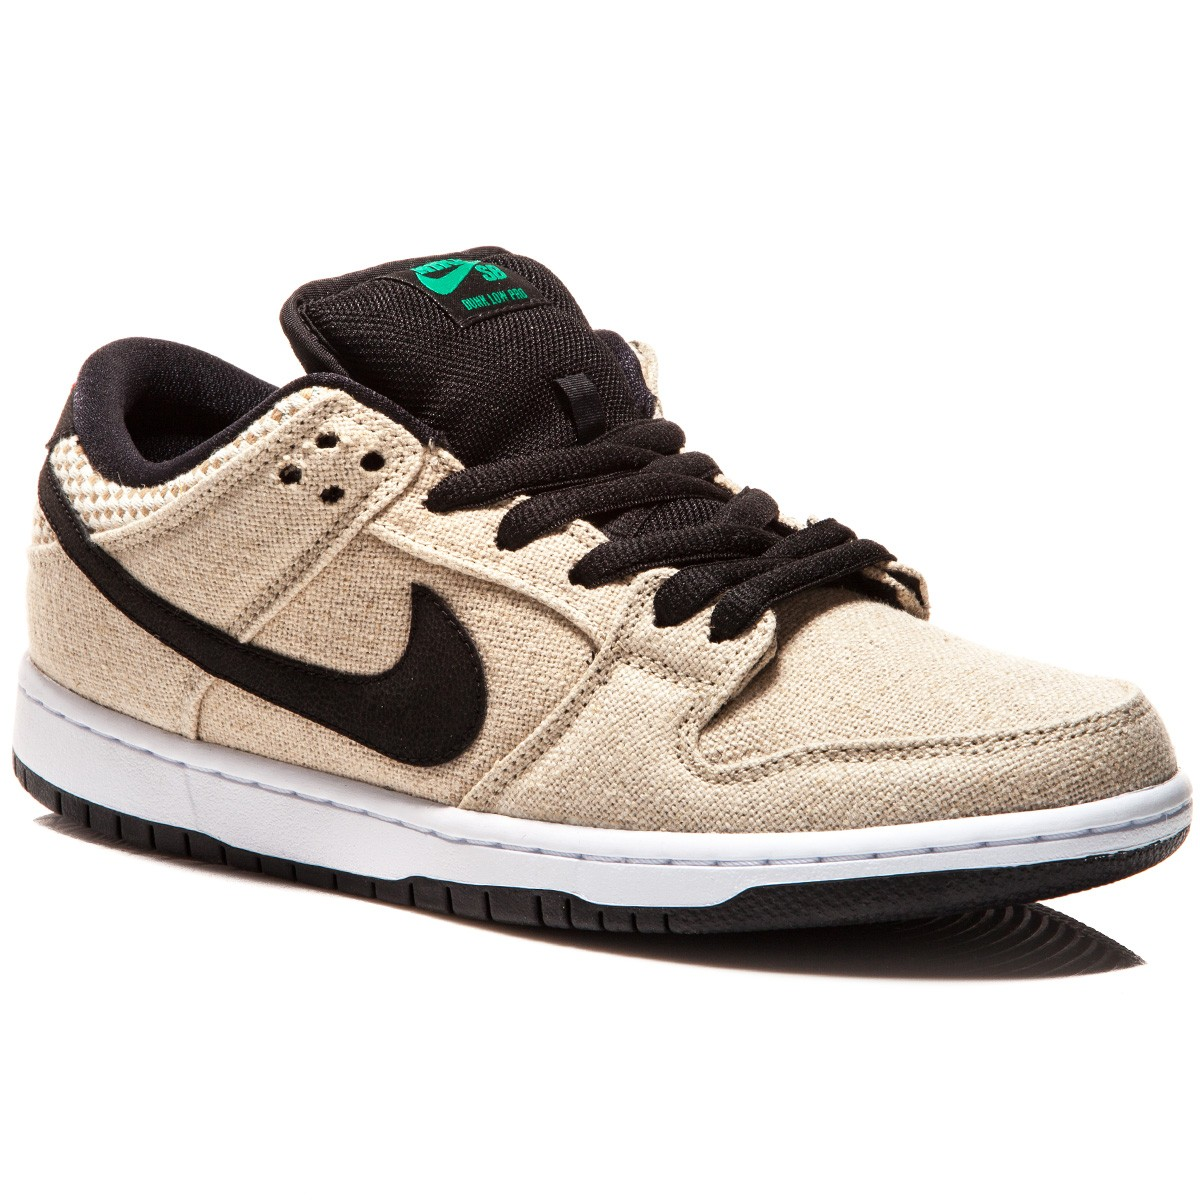 nike sb dunk low premium raw canvas shoes. Black Bedroom Furniture Sets. Home Design Ideas